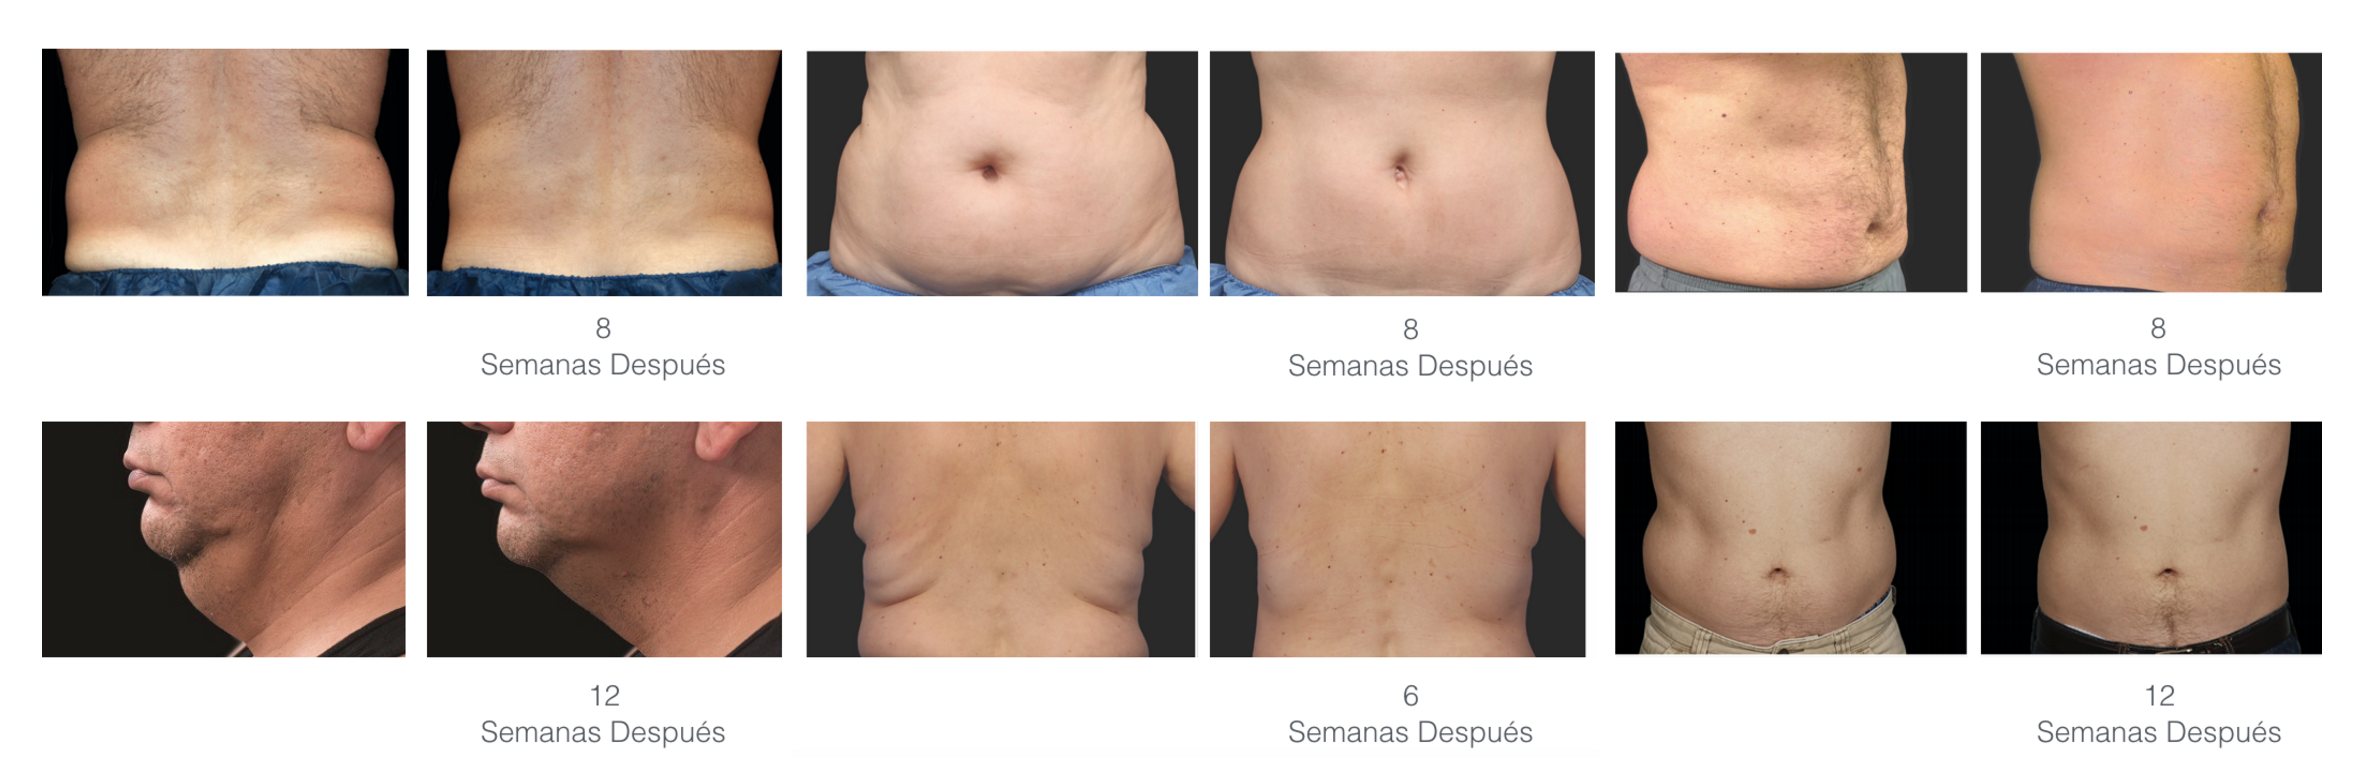 CoolSculpting / Criolipolisis